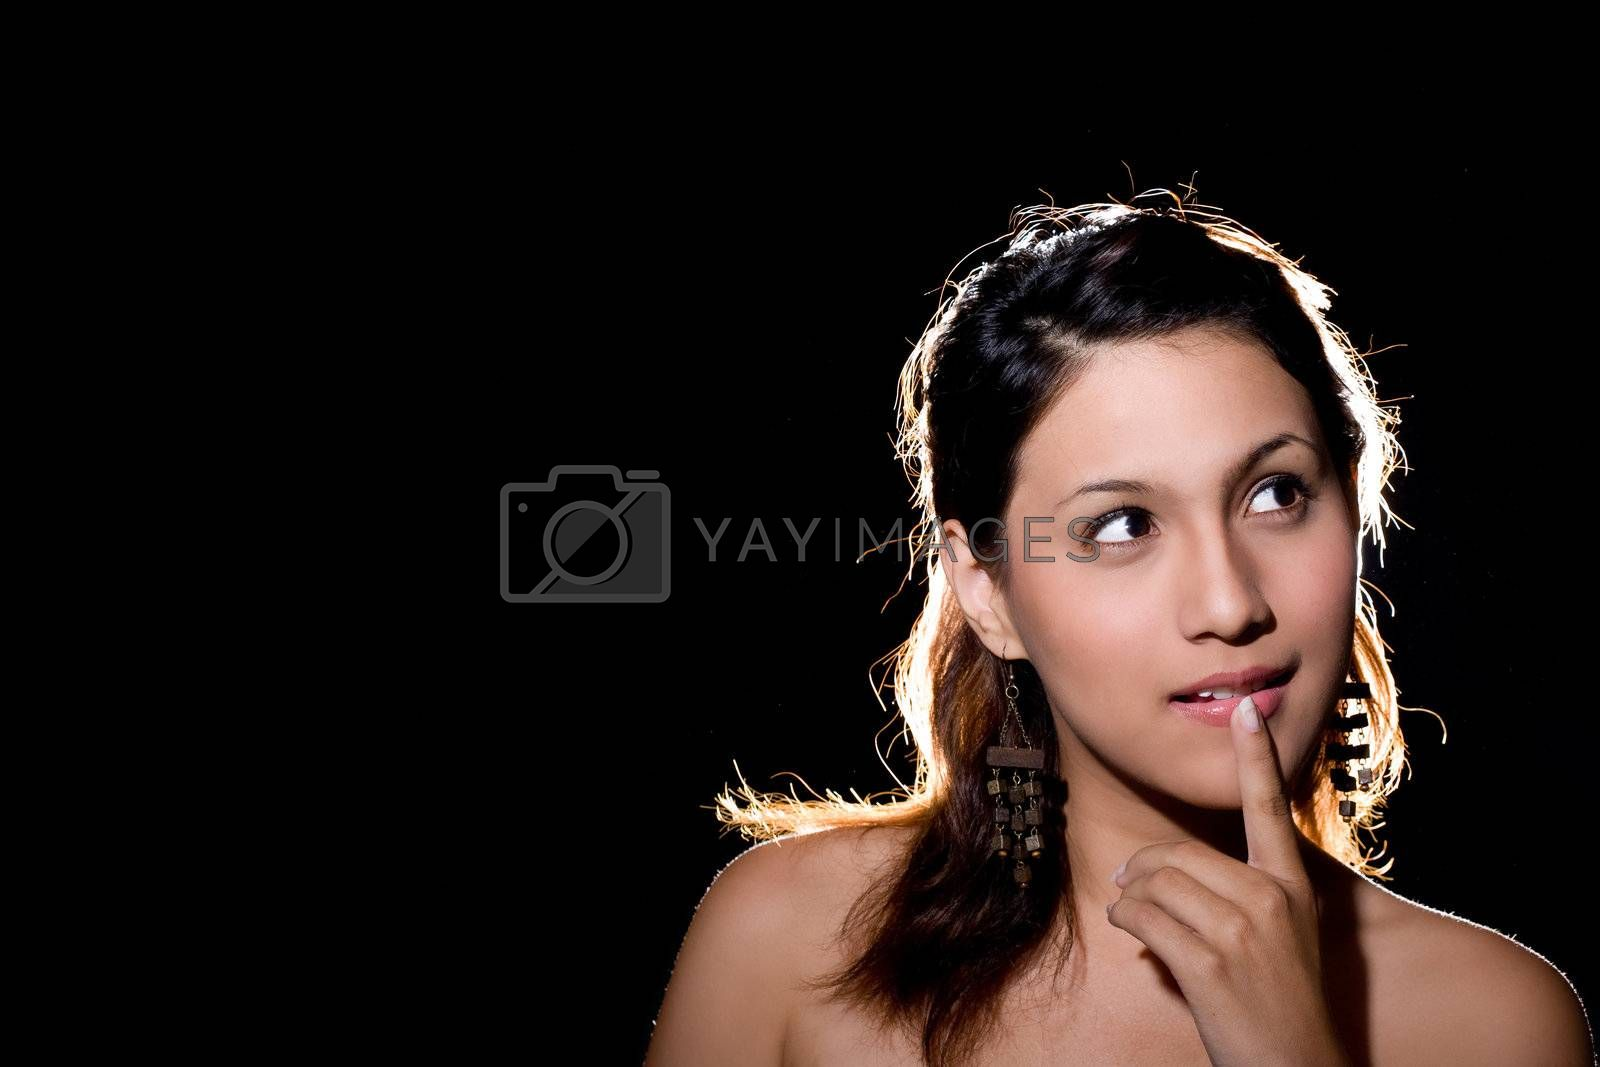 young woman smiling with a thought of an idea or solution